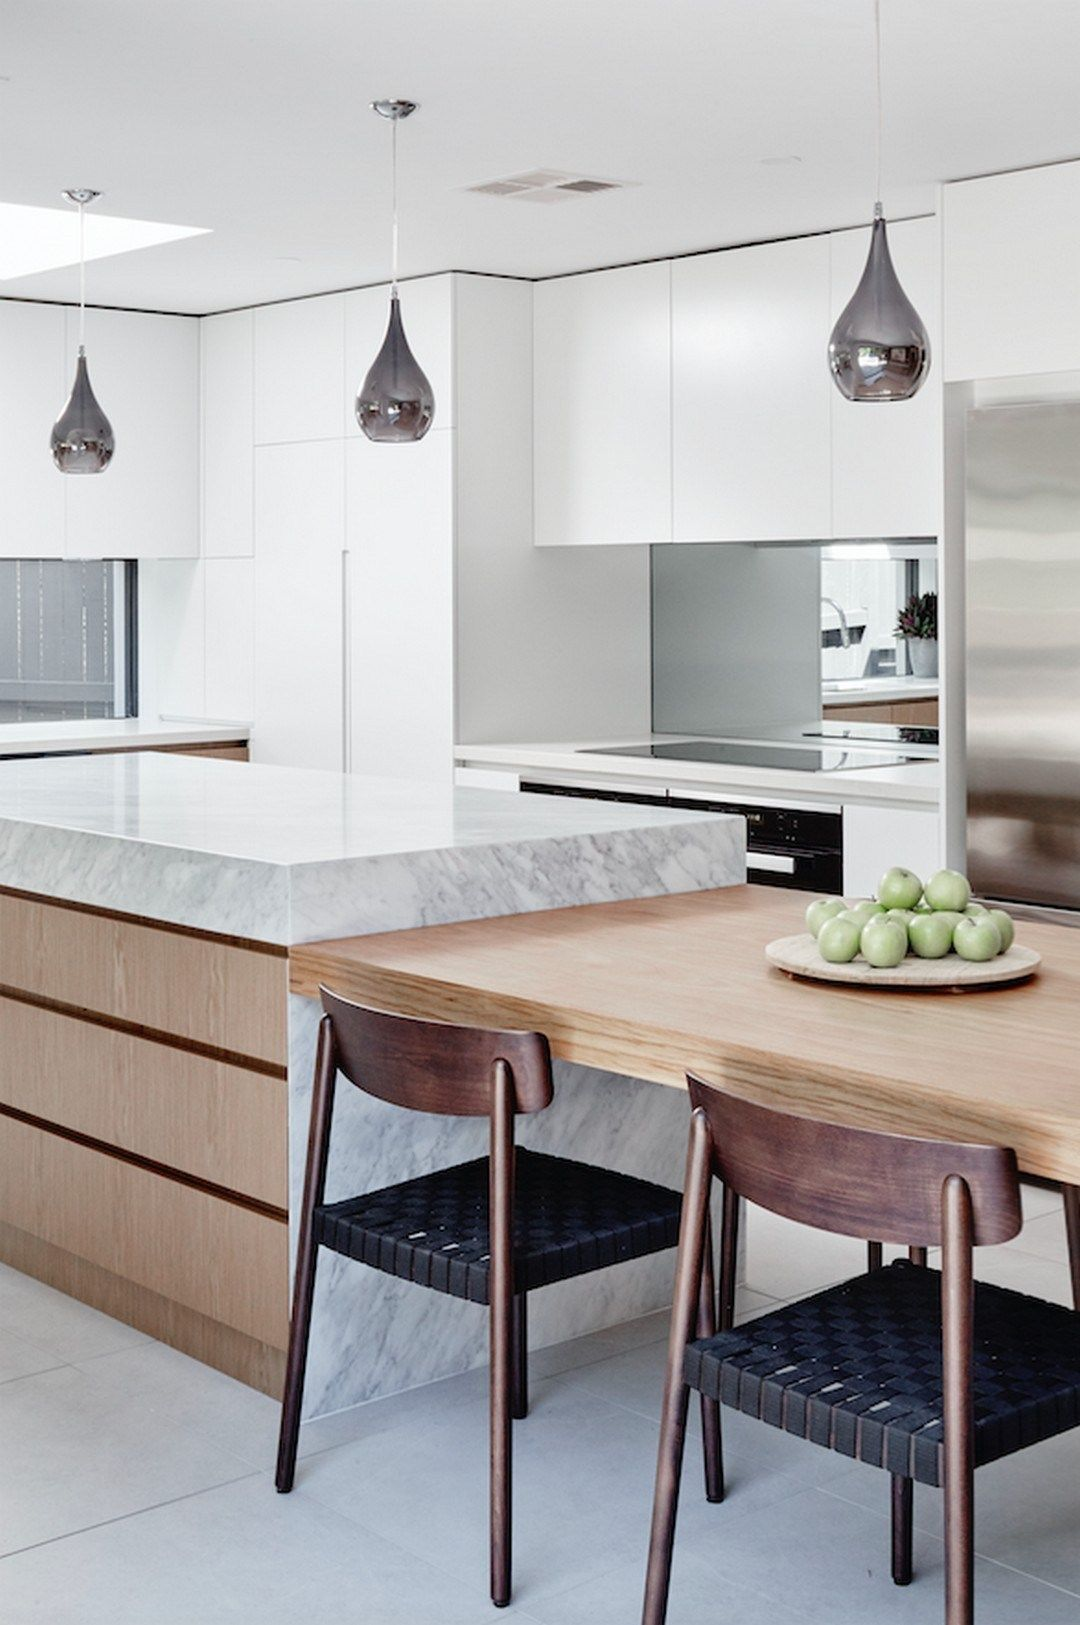 38 Amazing Kitchen Island With Built In Seating Decorations 25